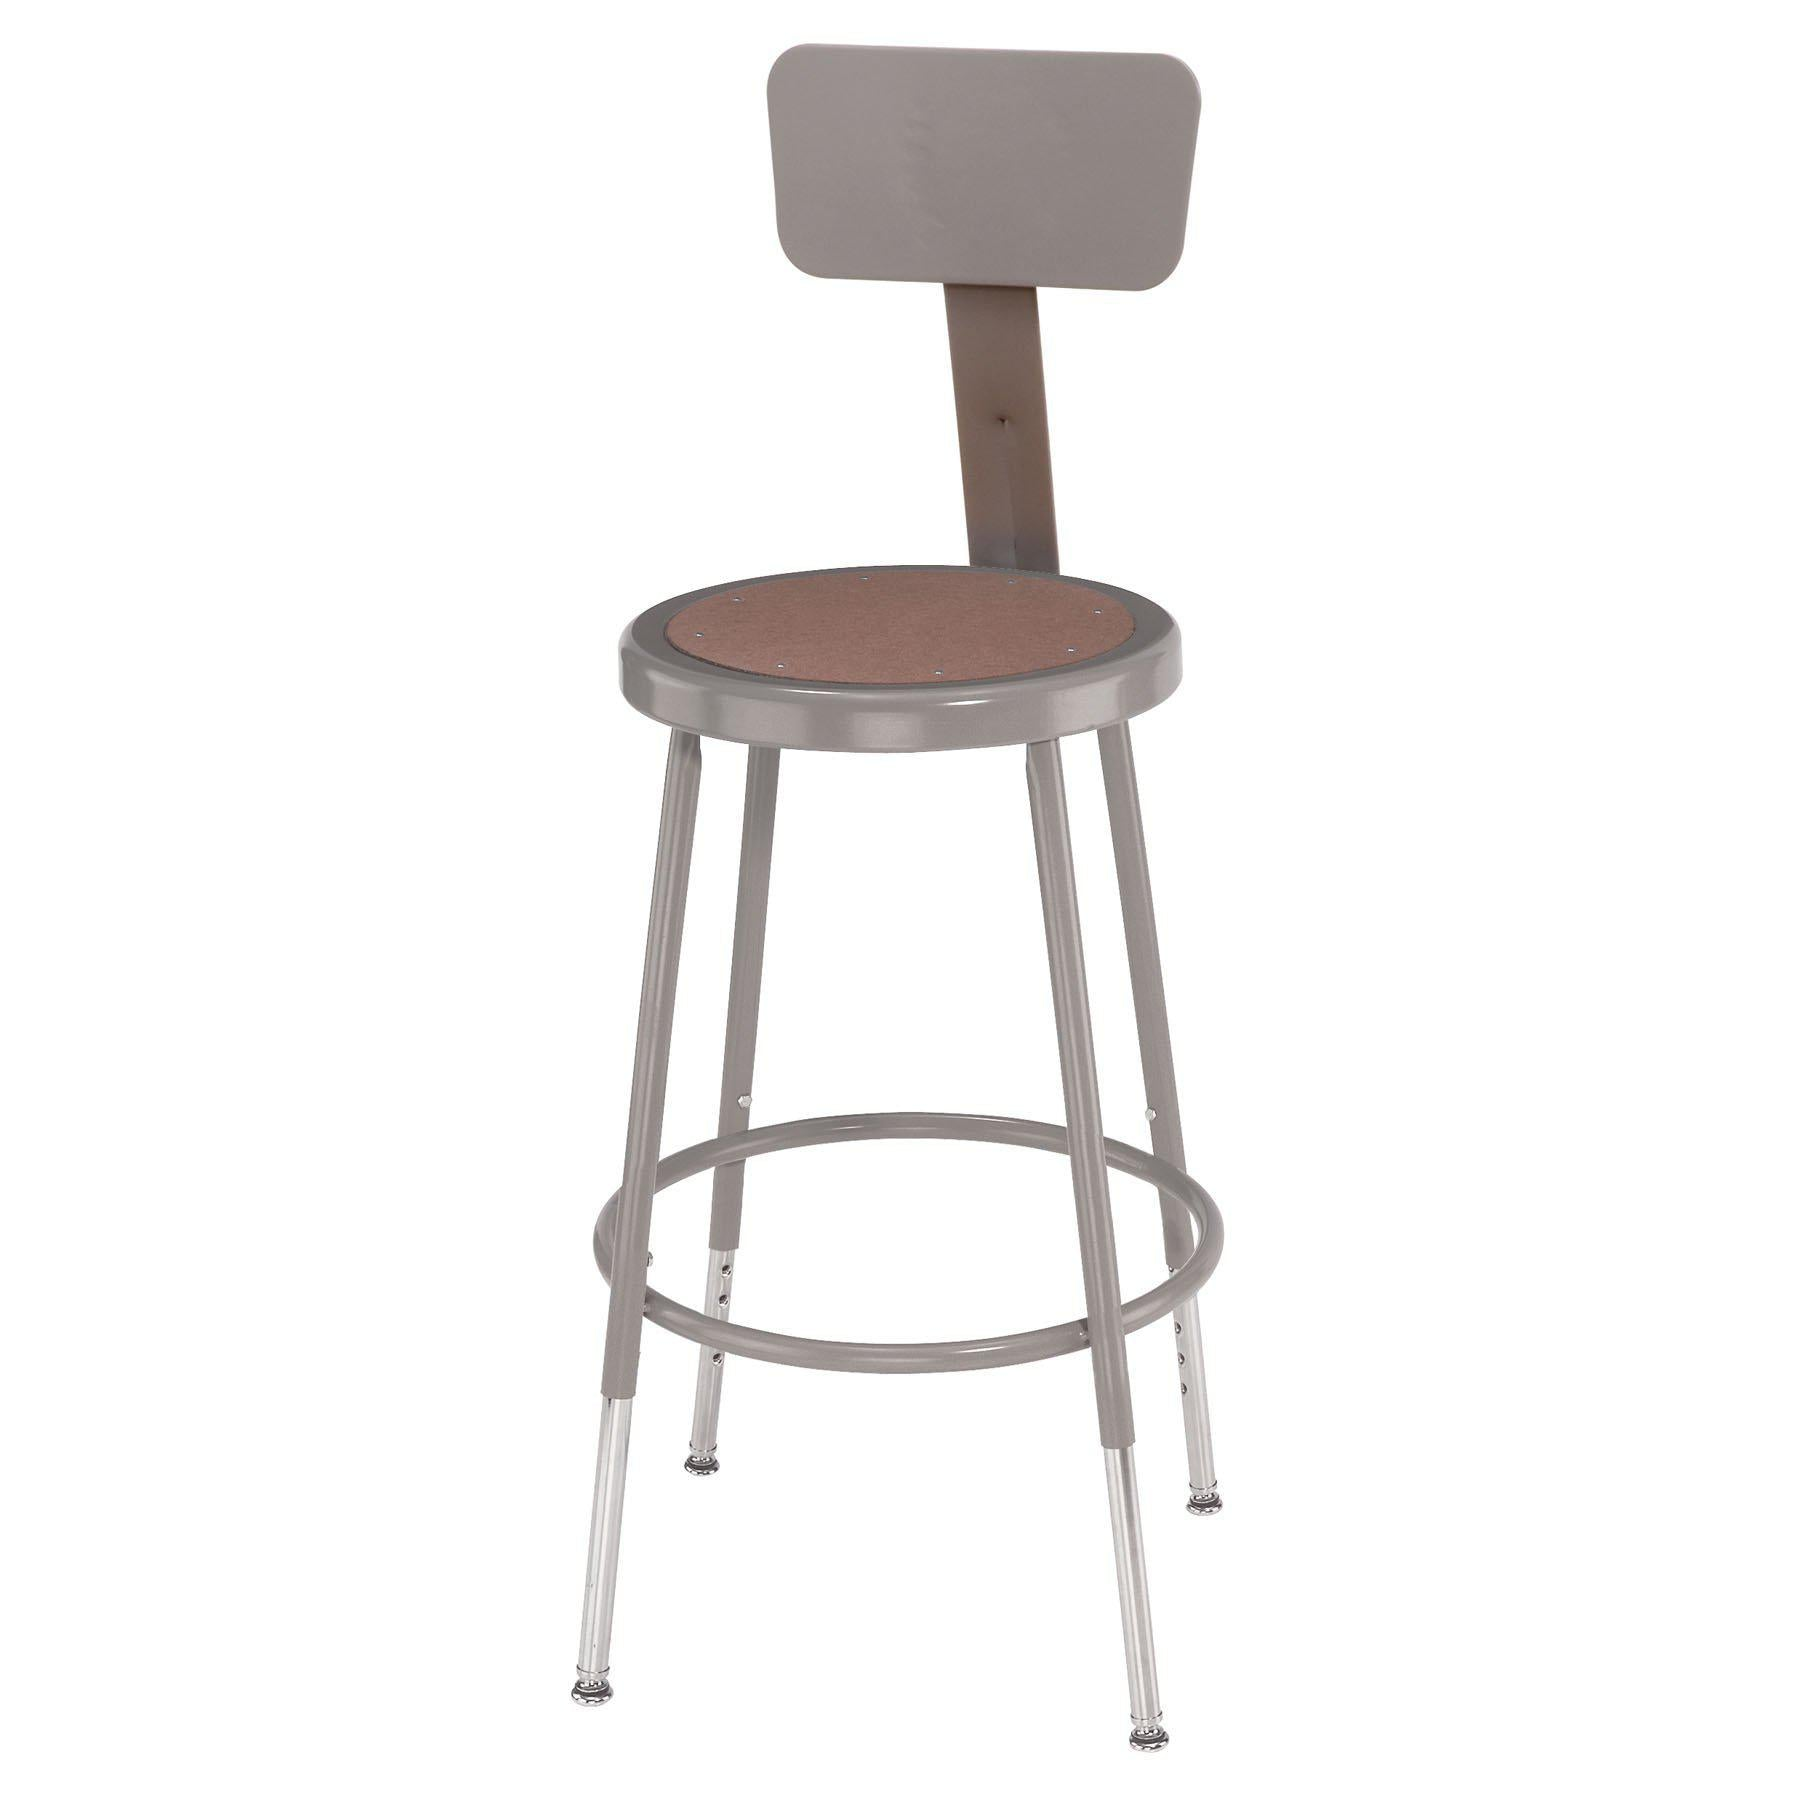 "Height Adjustable Heavy Duty Steel Stool With Backrest-Stools-Grey-19"" - 27""-"